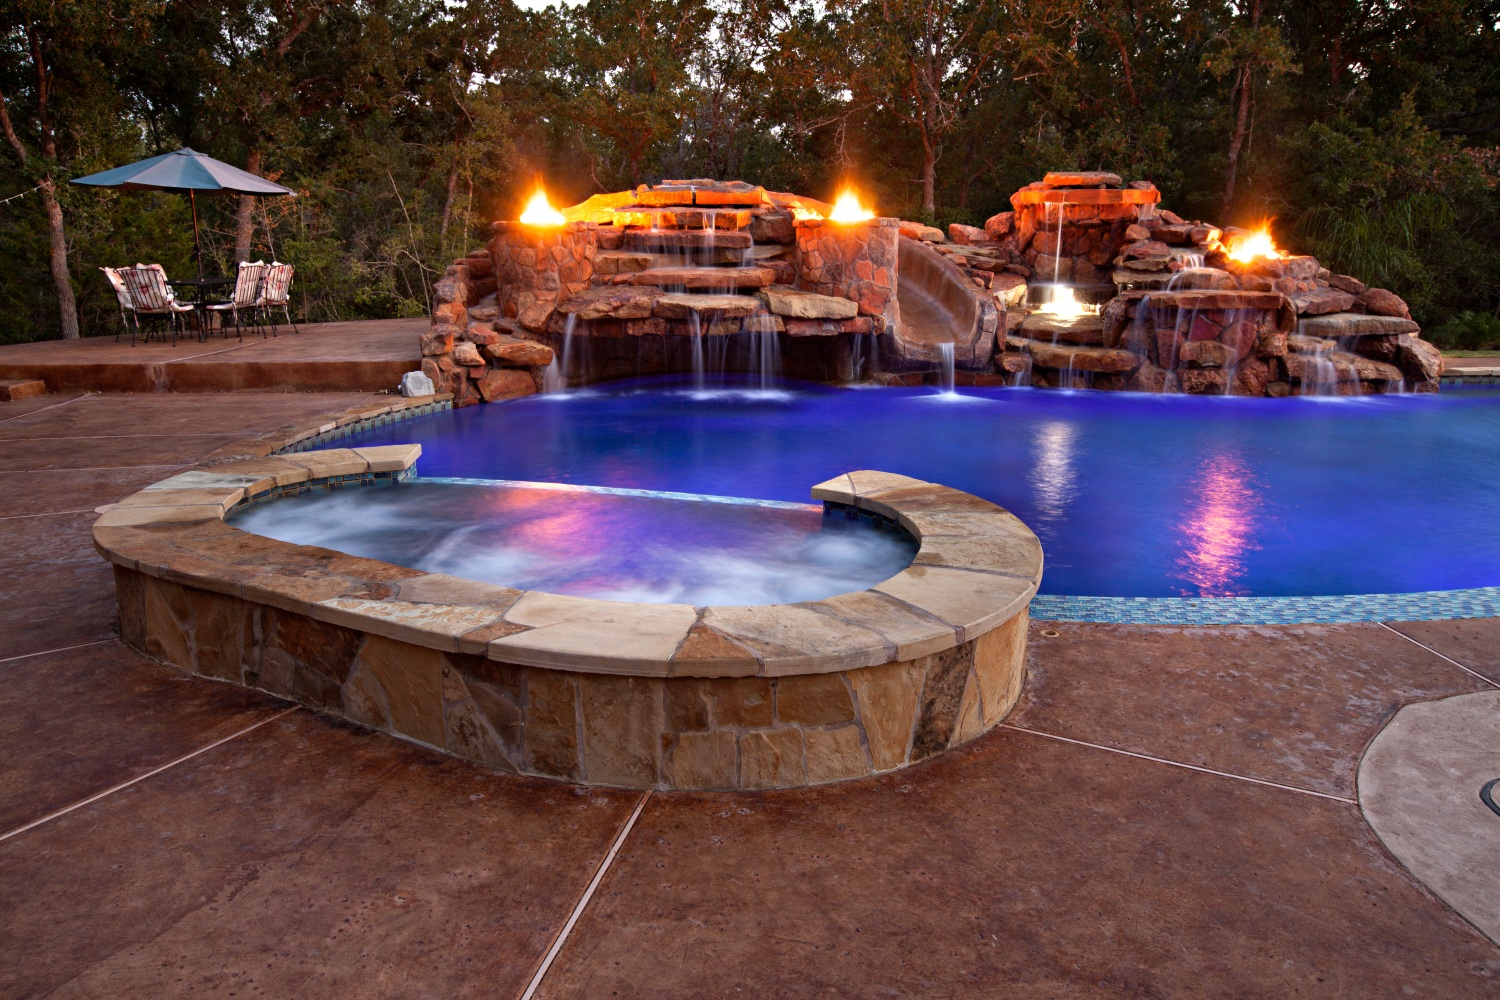 Bryan college station pools by price photo gallery brazos - Pool fire bowls ...